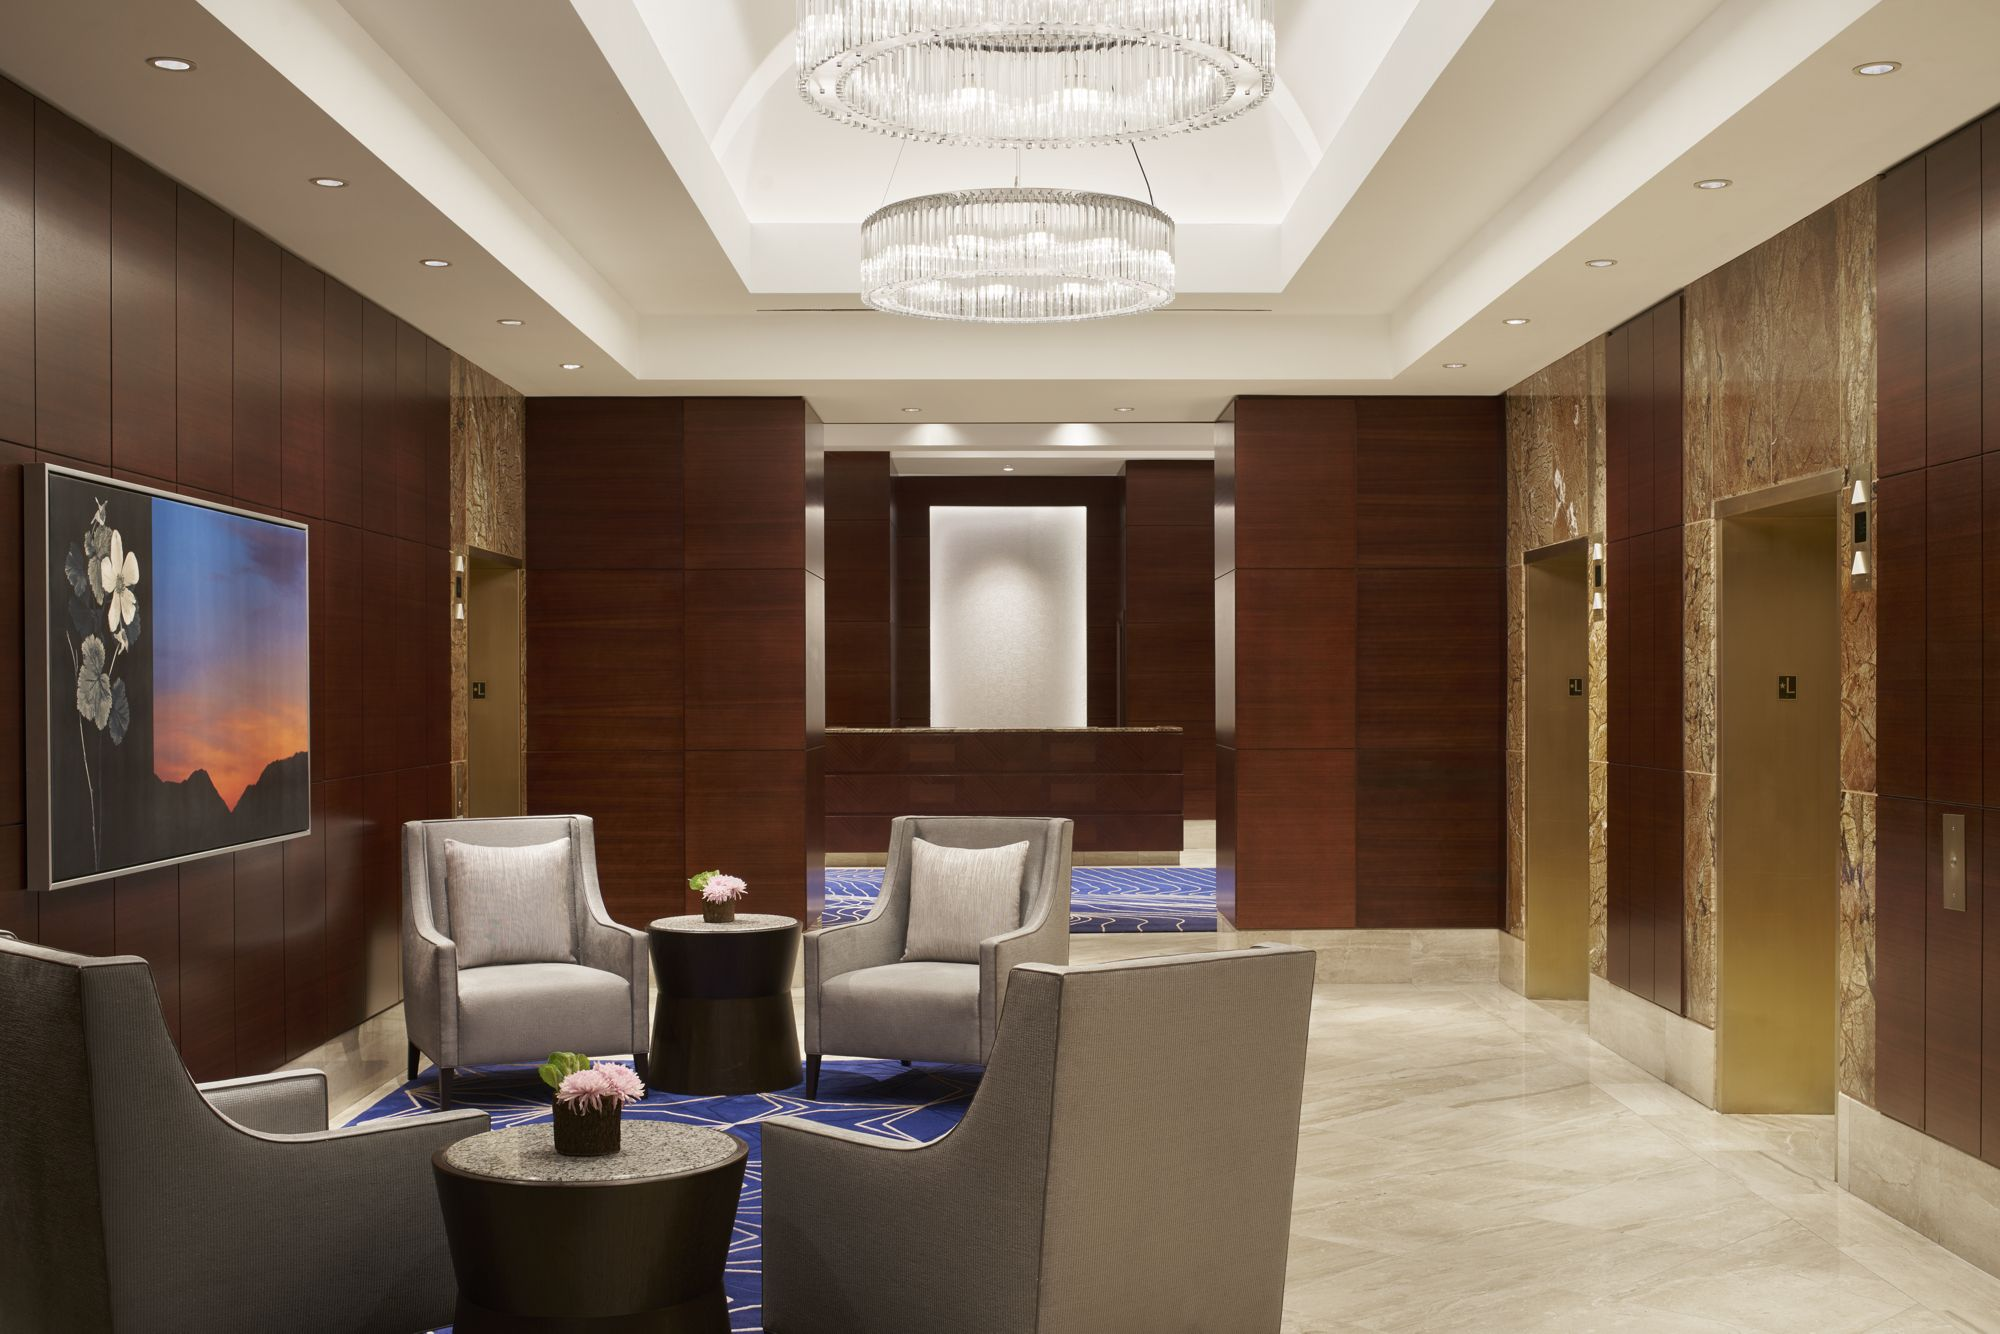 Lobby & Meeting Space Redesign | The Ritz-Carlton, Denver